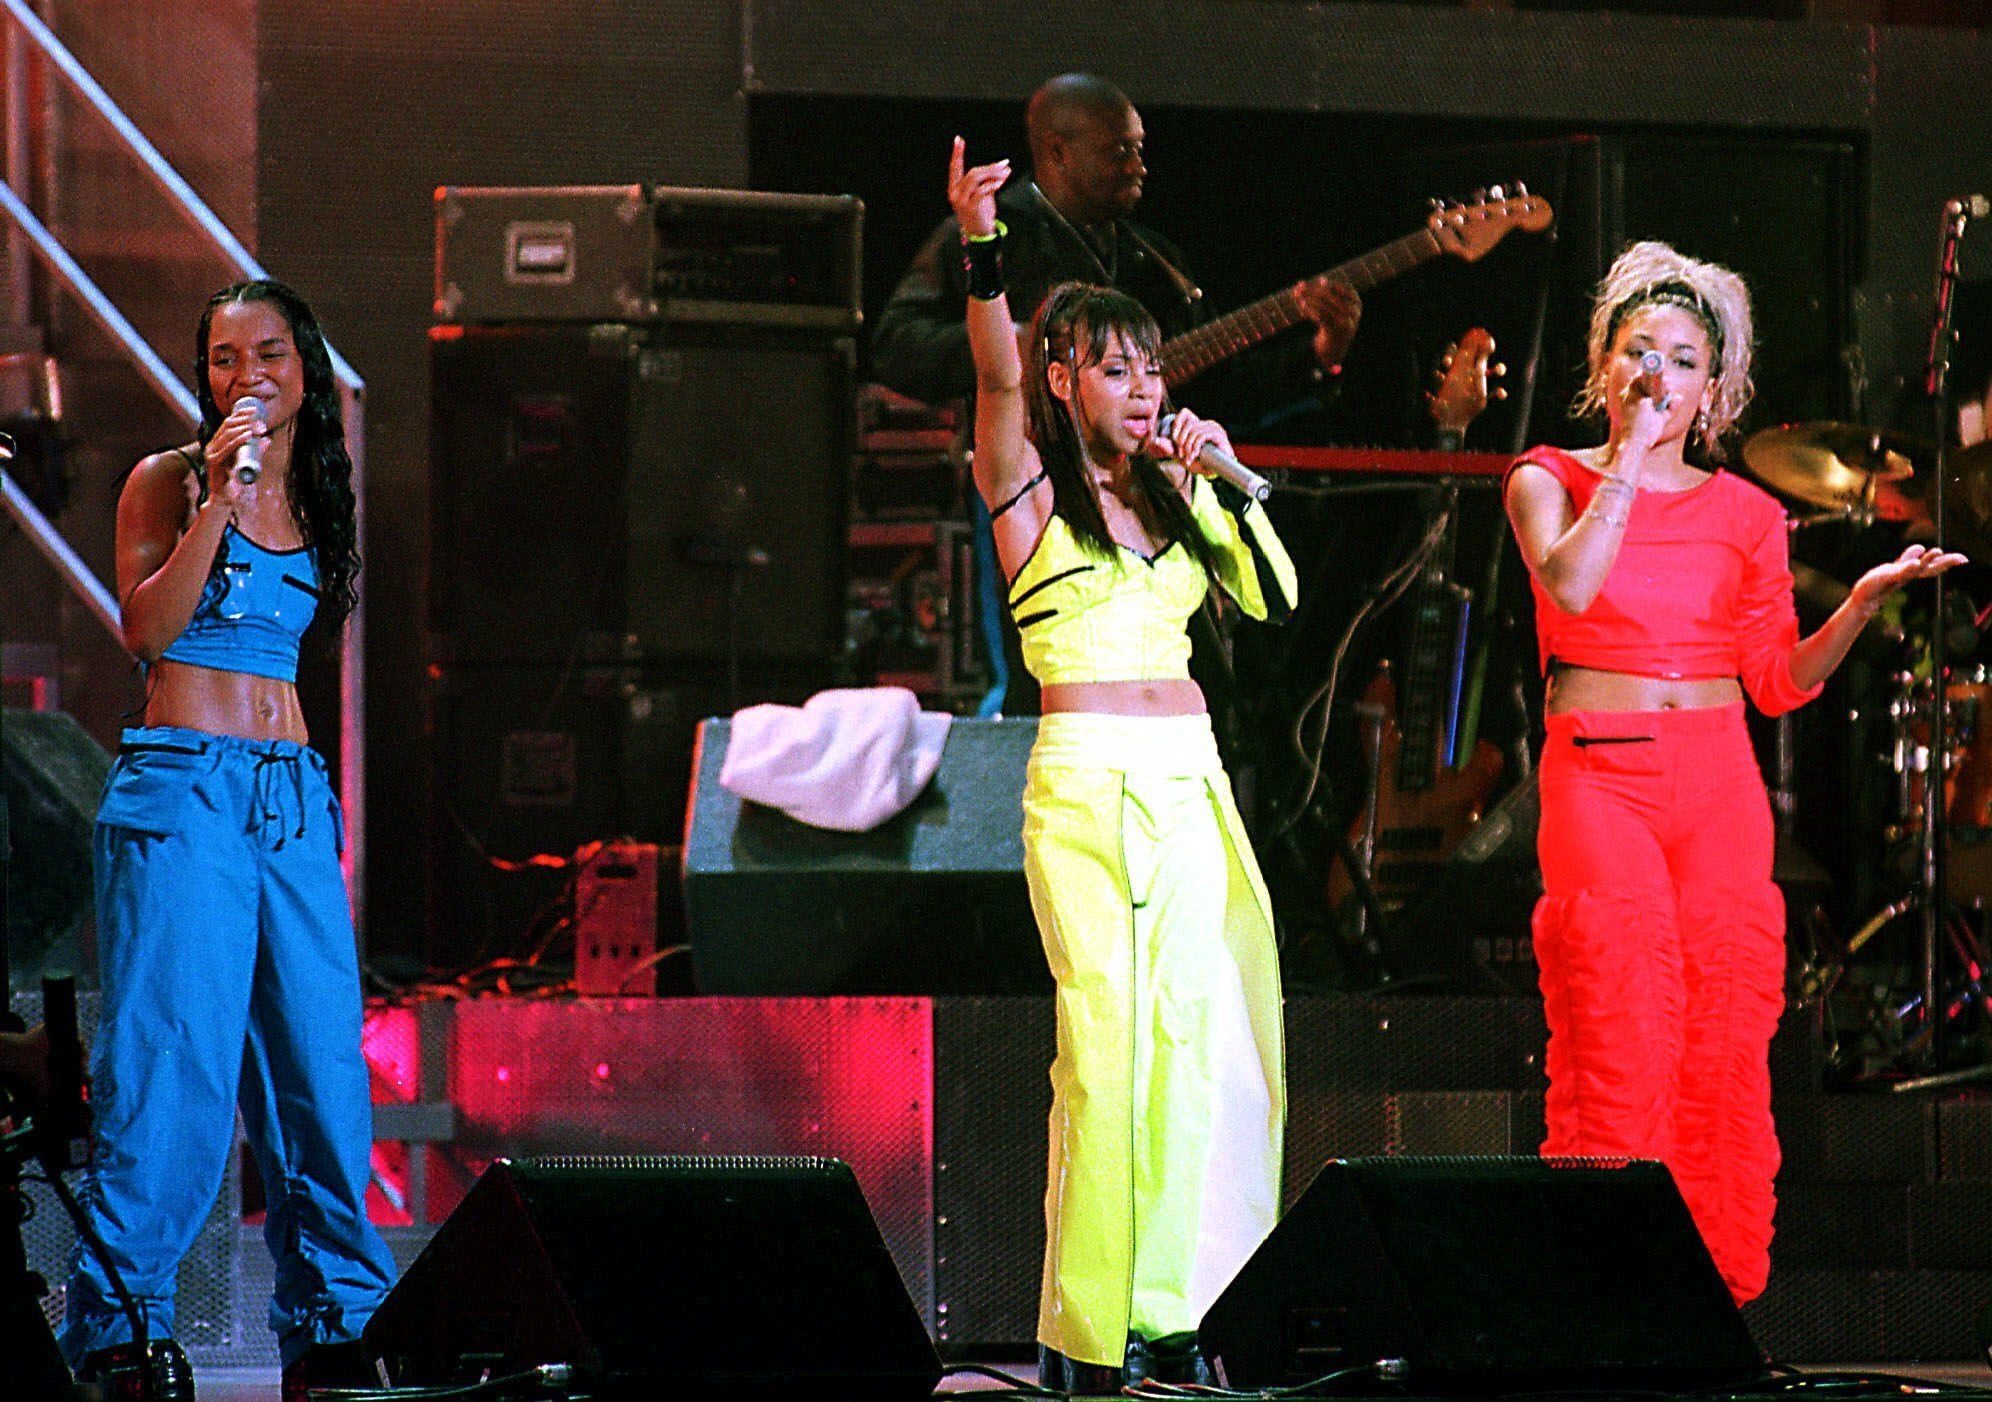 """TLC performs during a charity concert along with American artist Monica and Japanese teenage star Utada Hikaru at Tokyo's Nippon Budokan hall Tuesday night, Aug. 24, 1999.  With nine numbers from the group's latest hit album """"Fanmail,""""  the TLC joined with others for the concert to raise funds for the World Wide Fund for Nature (WWF). (AP Photo/Koji Sasahara)"""